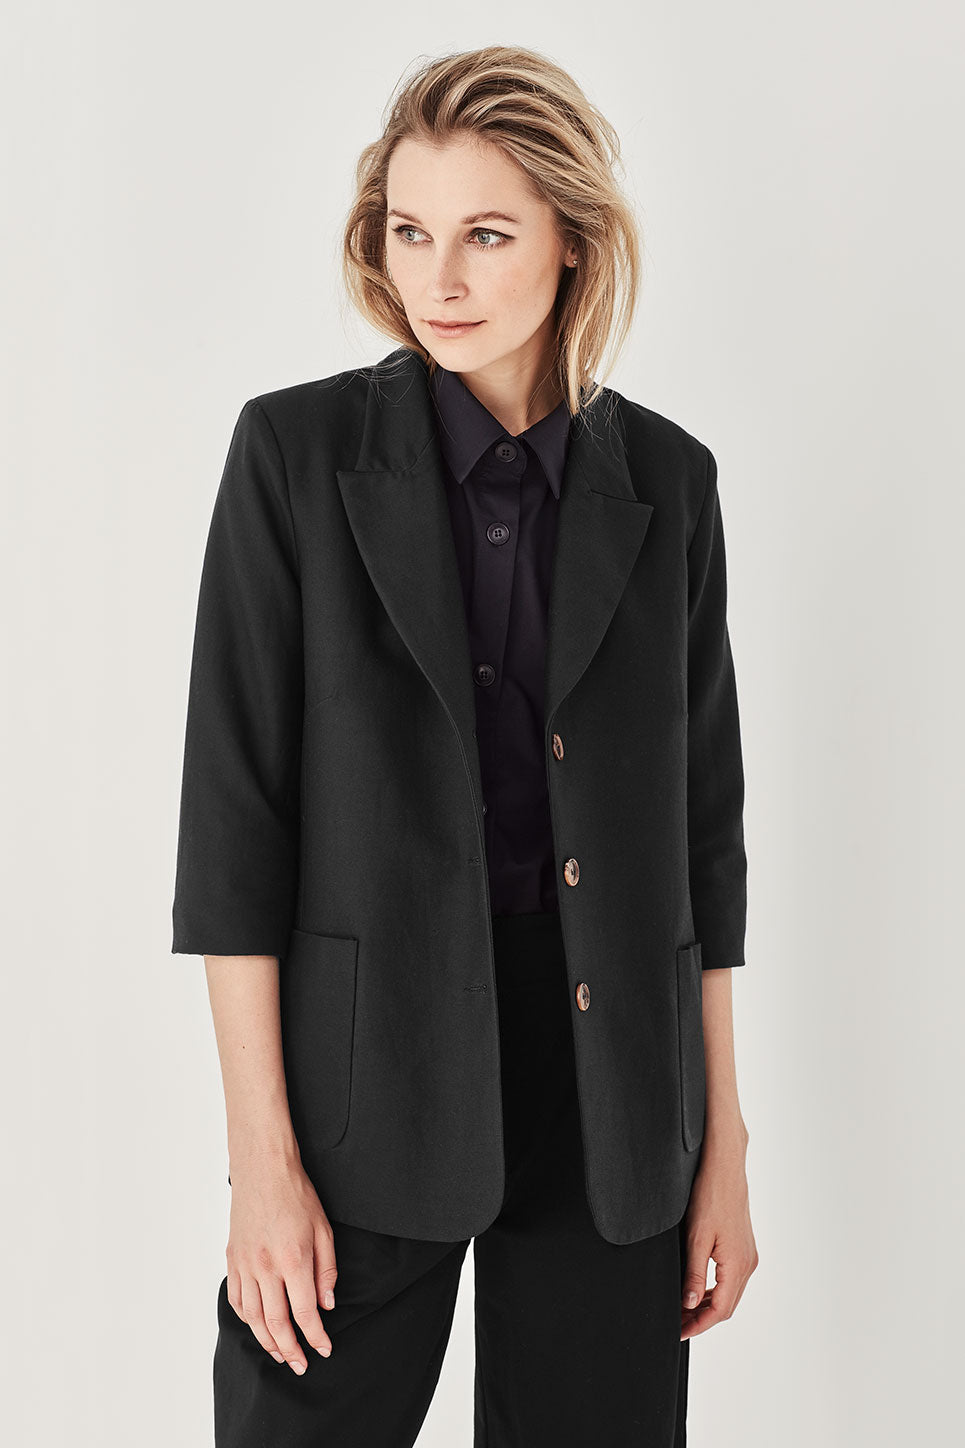 The Delamore Jacket in Black